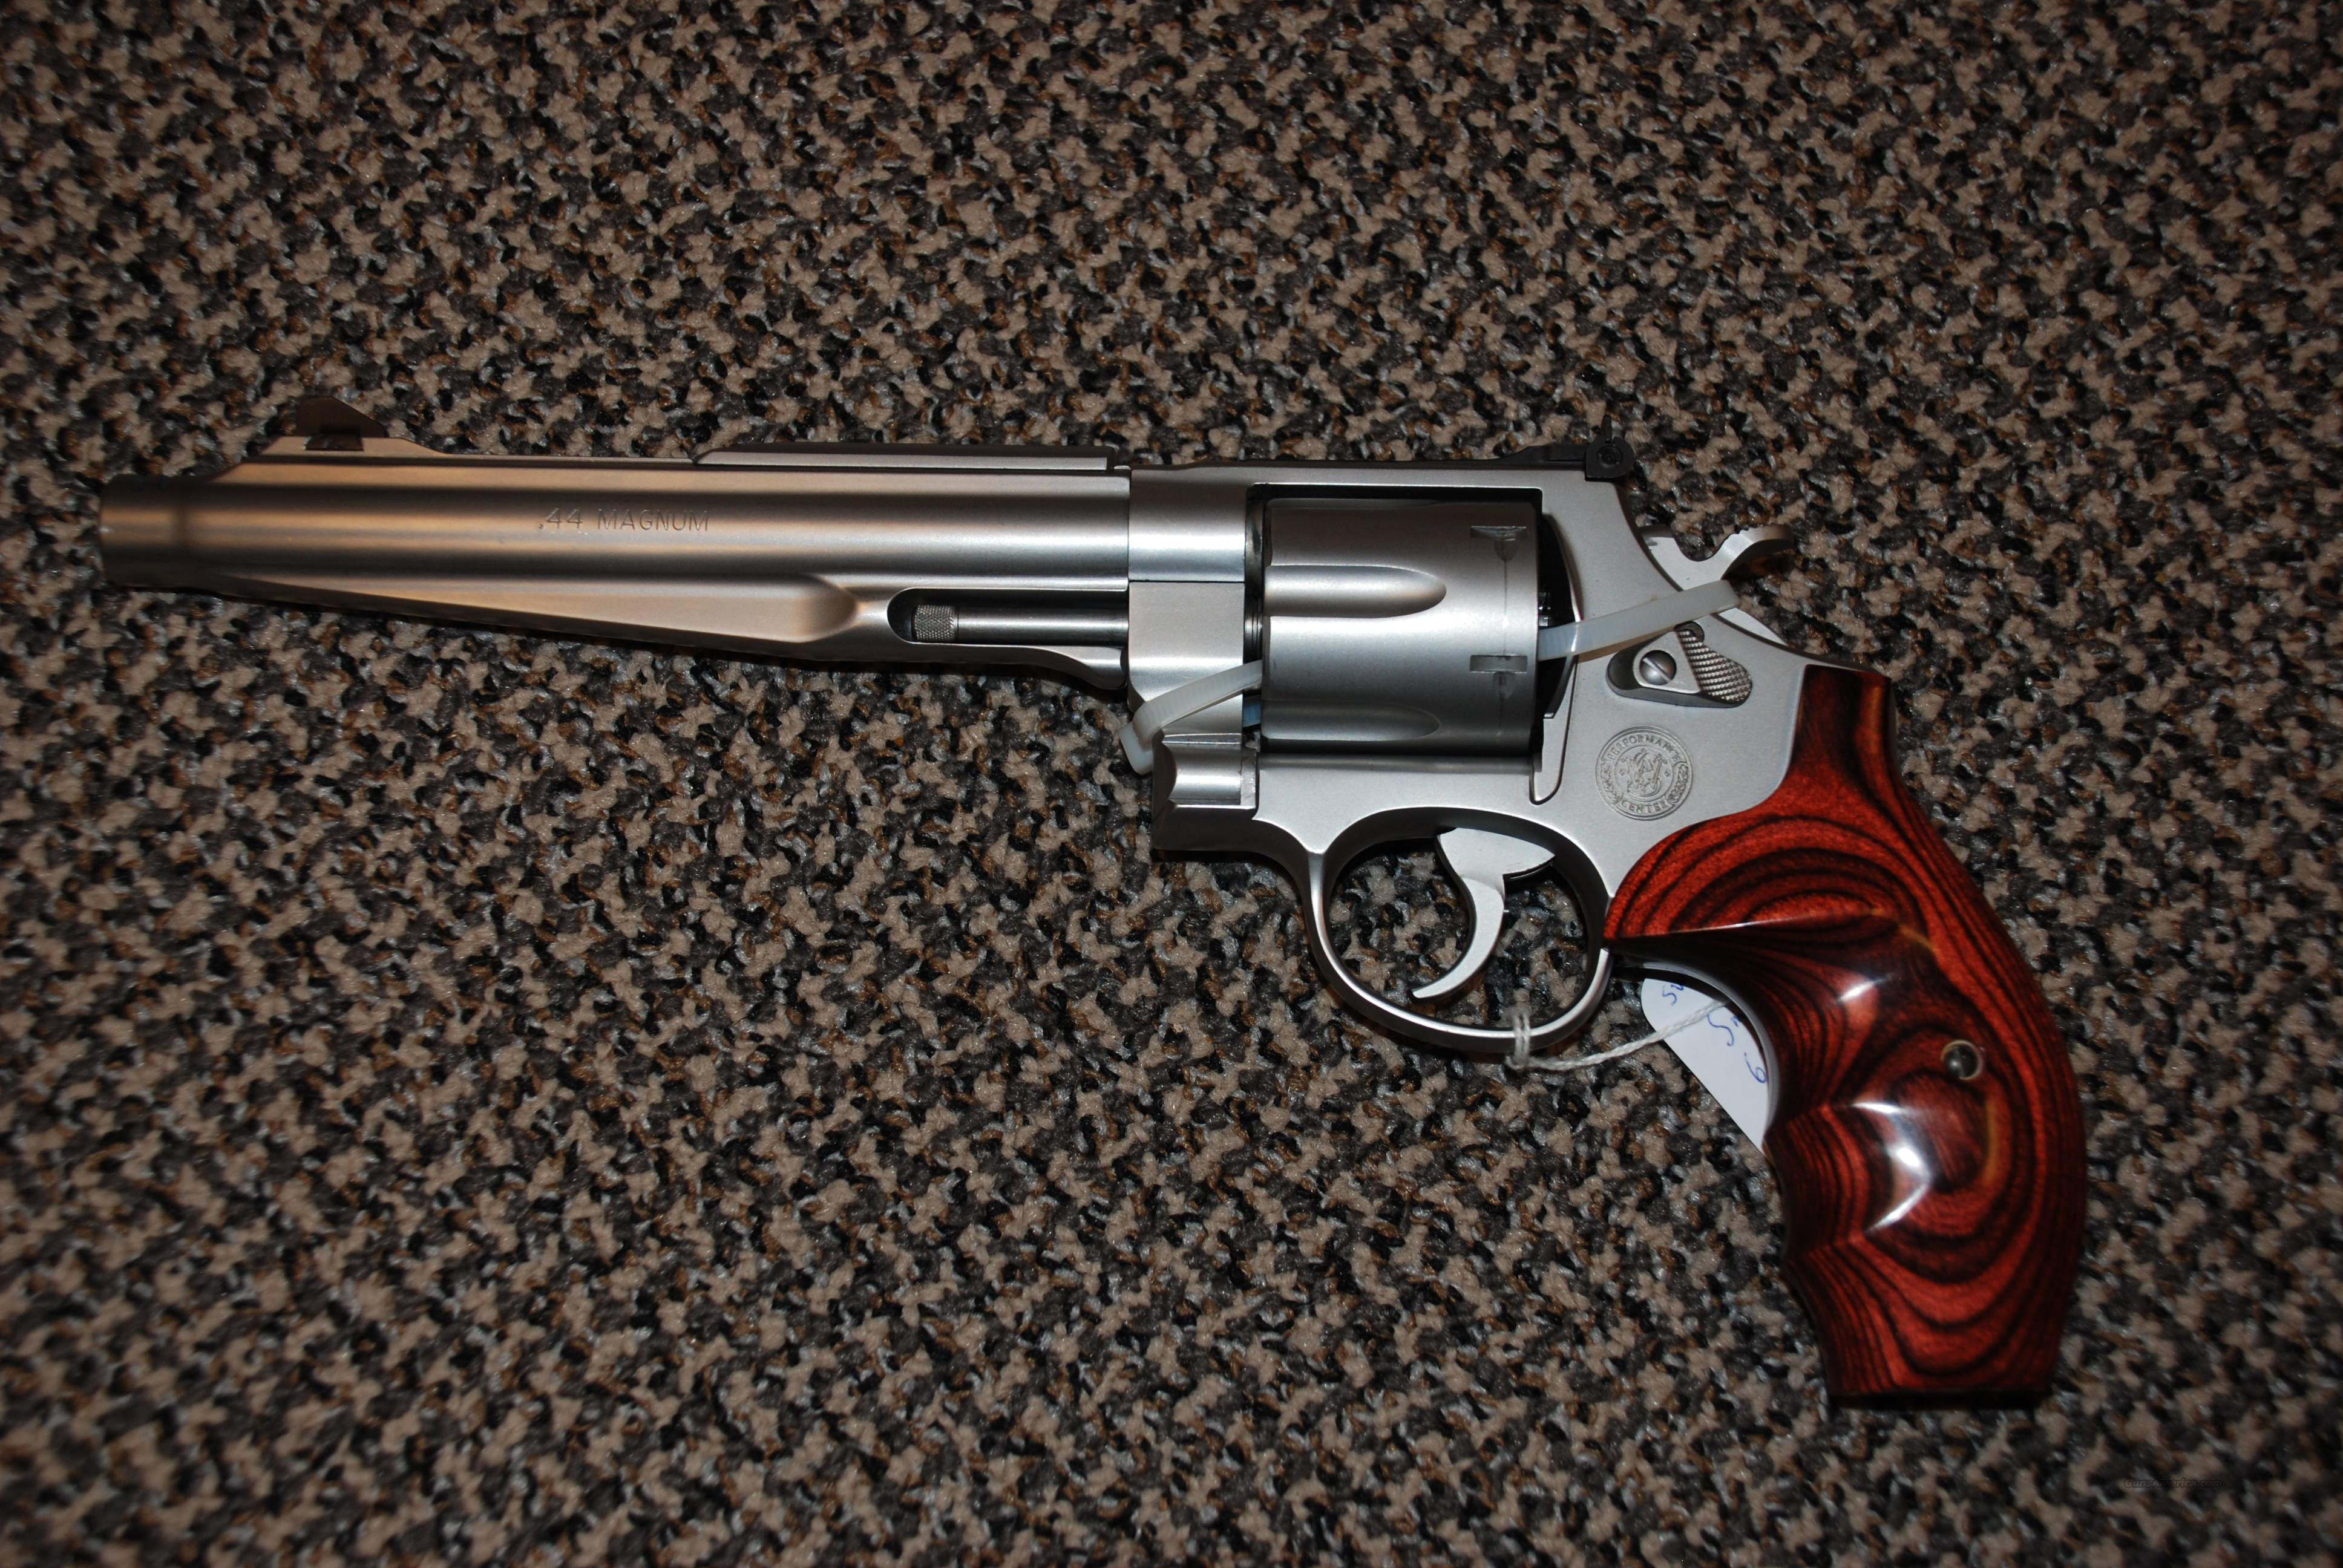 SMITH & WESSON PERFORMANCE CENTER MODEL 629 STAINLESS  Guns > Pistols > Smith & Wesson Revolvers > Performance Center